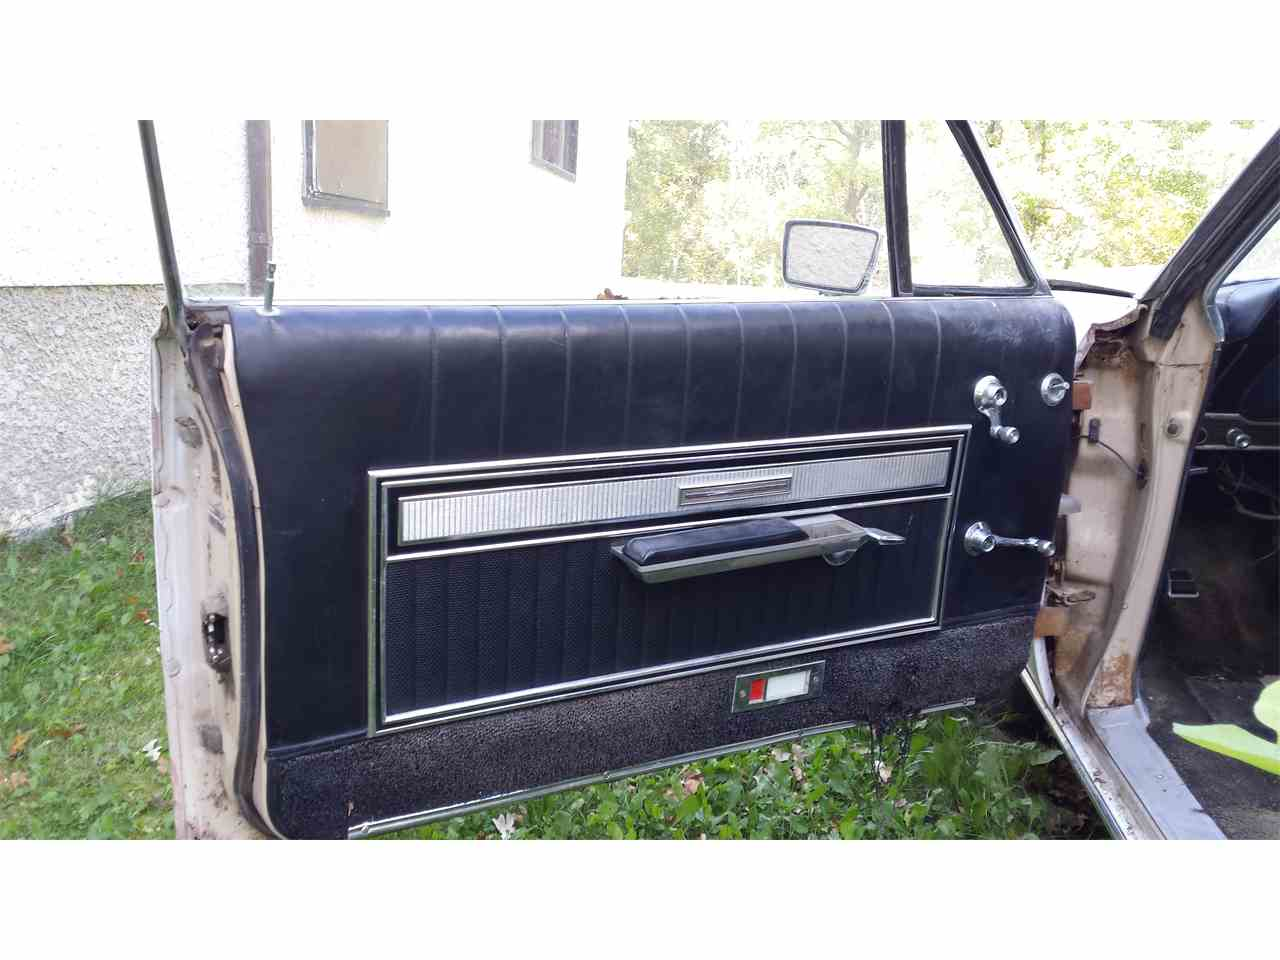 Large Picture of 1966 Ford Galaxie 500 XL located in Stonewall  Manitoba - $2,000.00 Offered by a Private Seller - JAVL